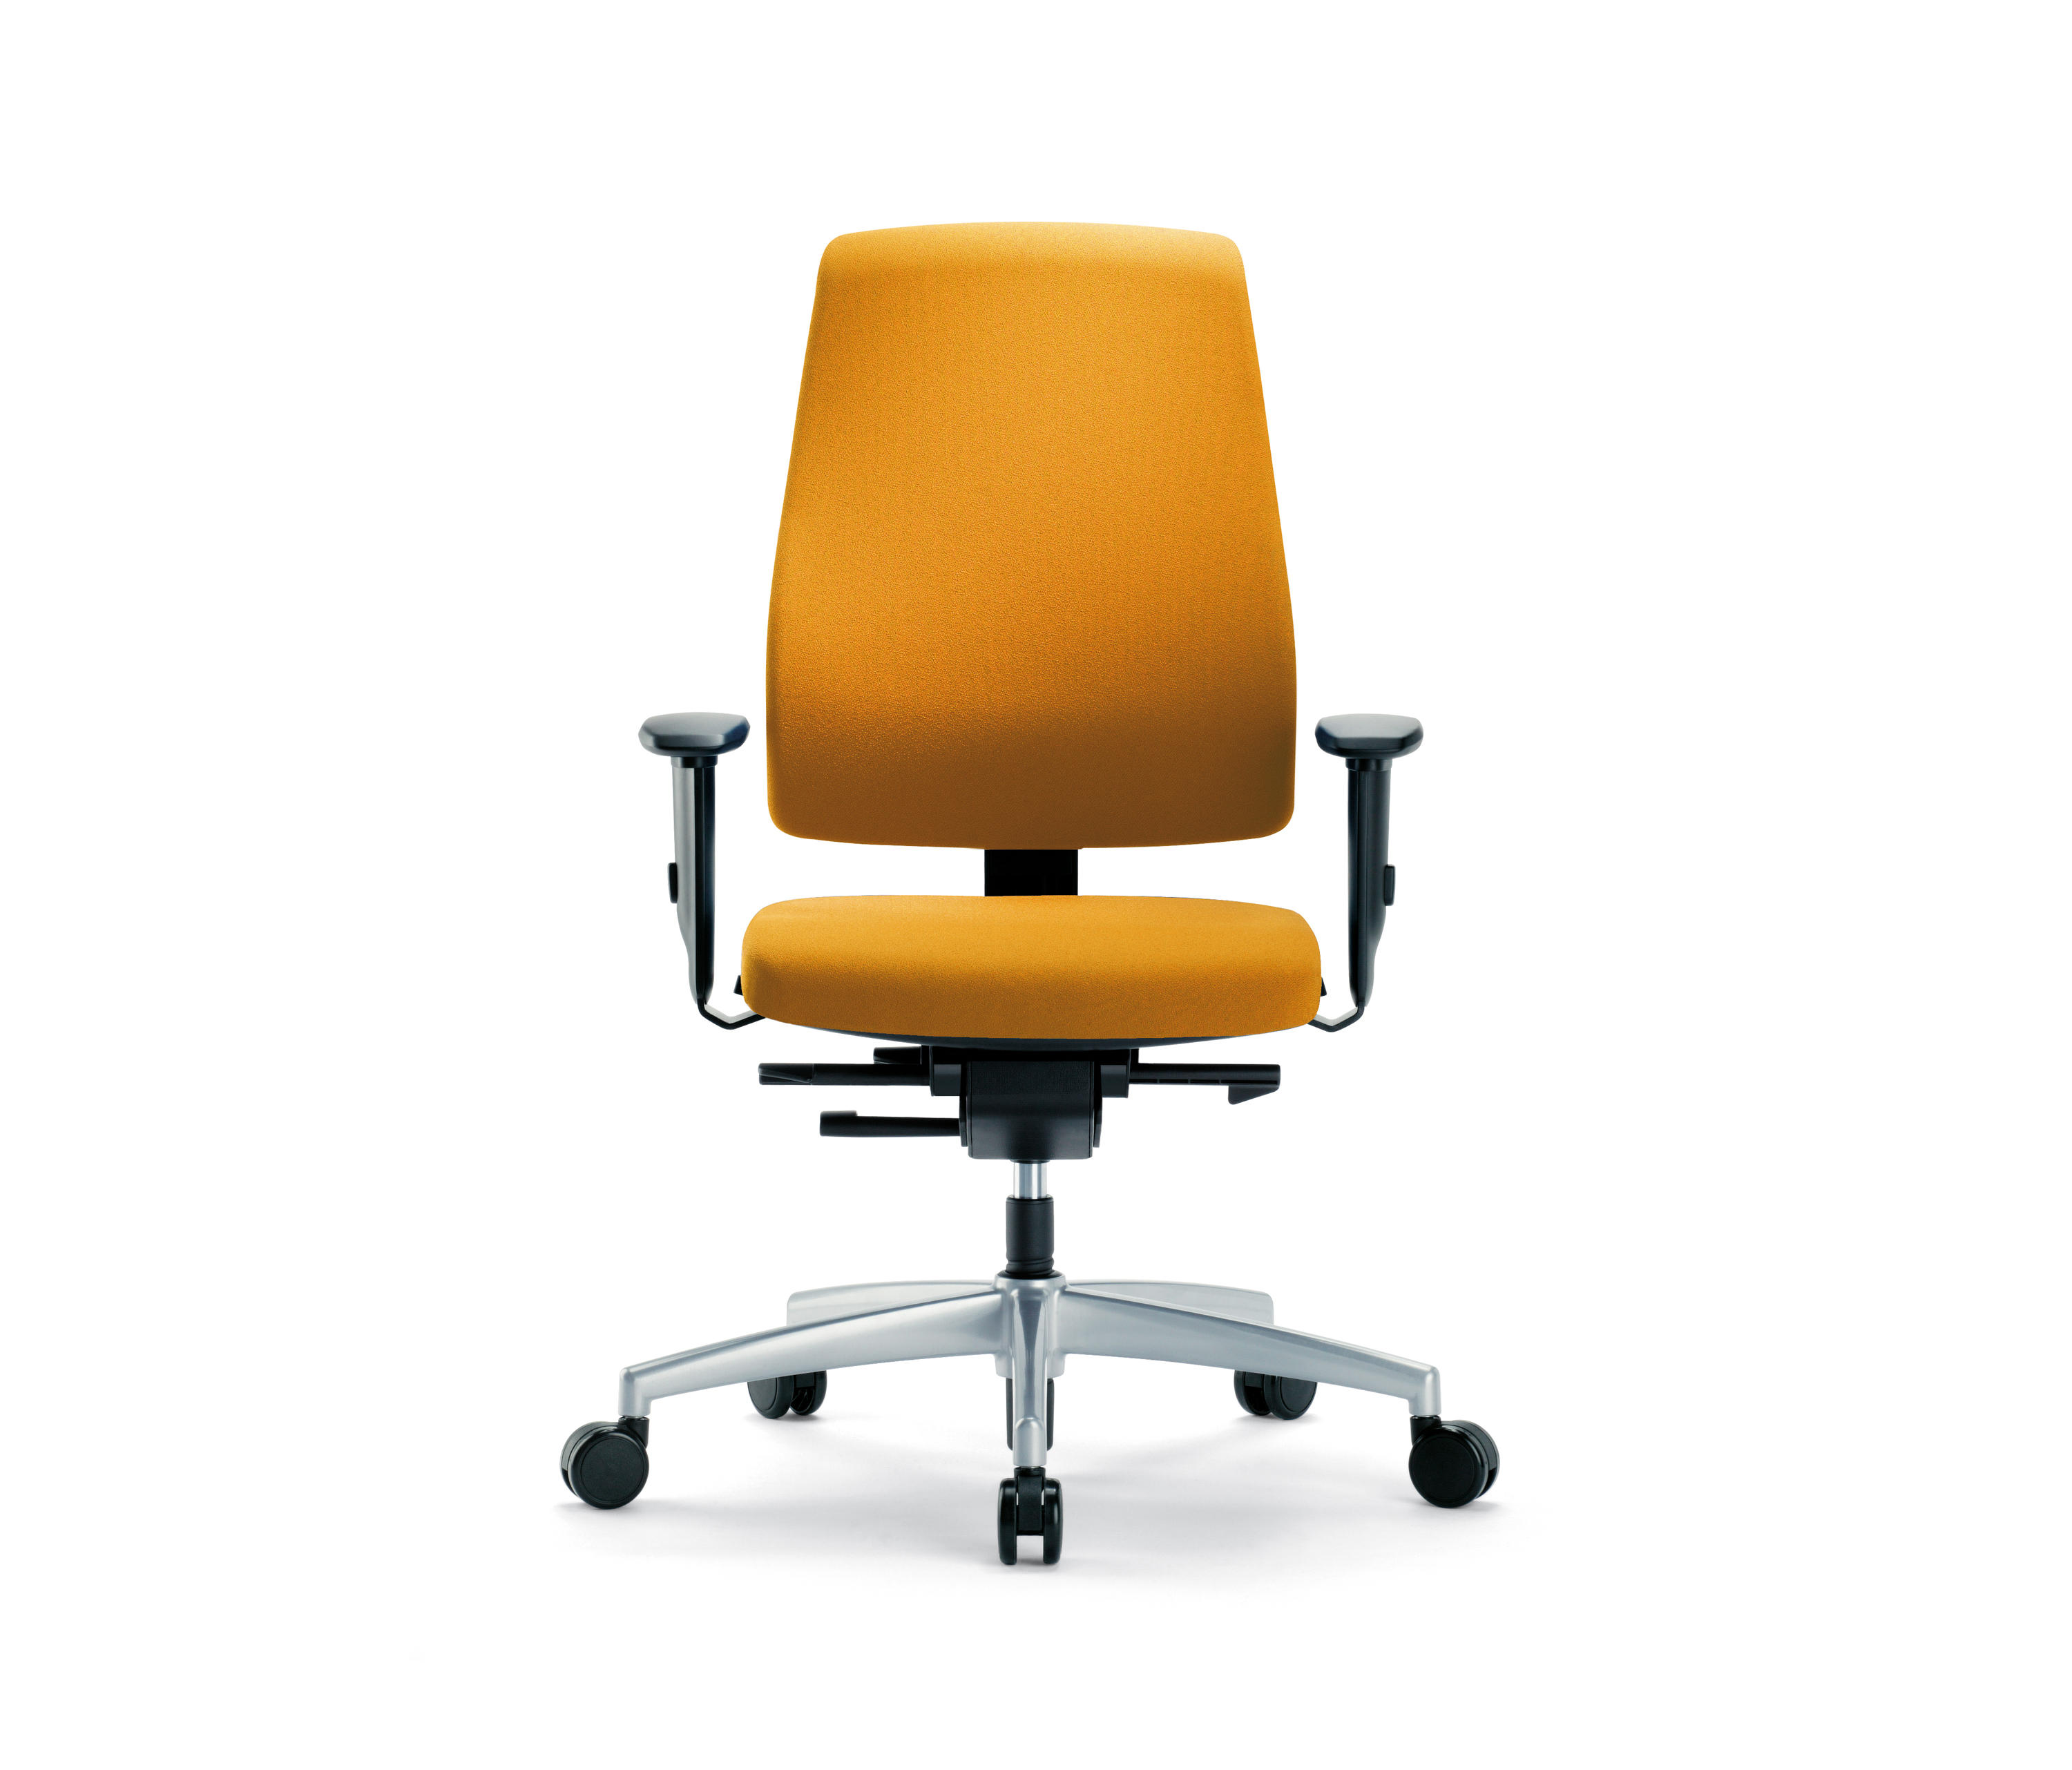 GOAL 152G - Task chairs from Interstuhl Büromöbel GmbH & Co. KG ...